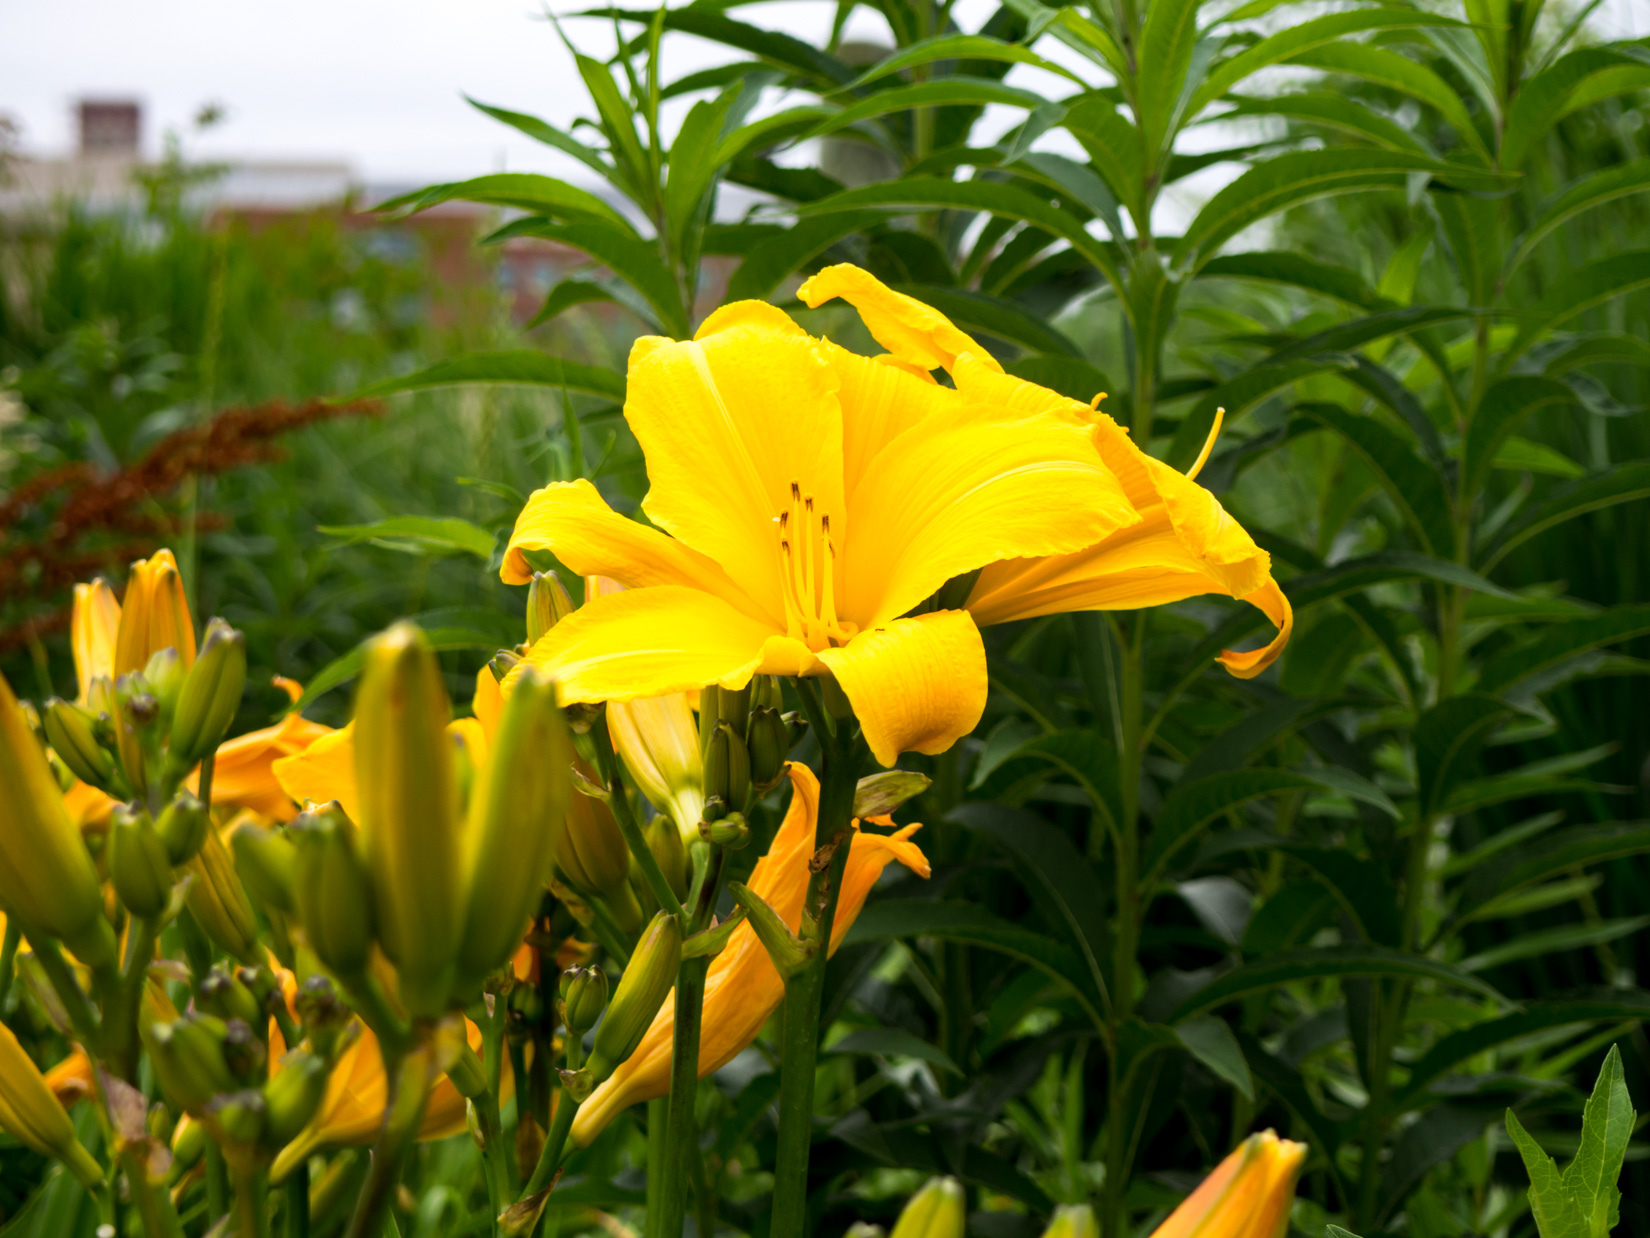 Blooming Yellow Flower in Garden